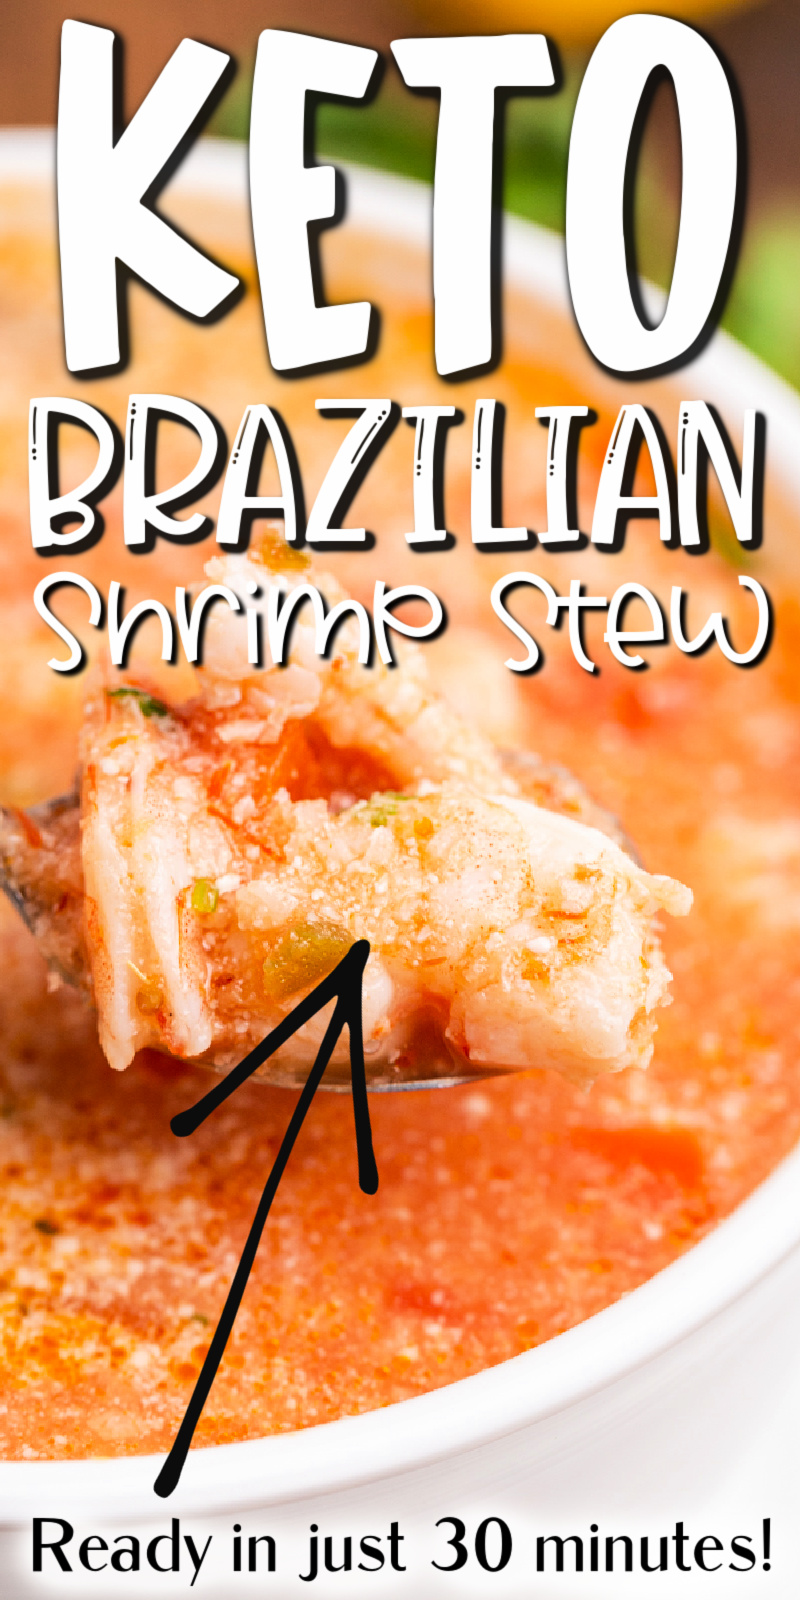 Keto Brazilian Shrimp Stew - This Keto Brazilian Shrimp Stew recipe is my low carb version of the classic Moqueca de Camaroes. It is so incredibly delicious with a creamy coconut and tomato base, plump juicy shrimp, jalapeno, all brightened up with fresh lemon juice. It is easy to make but perfect for any occasion from a fancy get together with friends to a quiet dinner at home with family! #keto #lowcarb #glutenfree #dairyfree #shrimp #seafood #stew #soup #brazilian #easy #quick #recipe